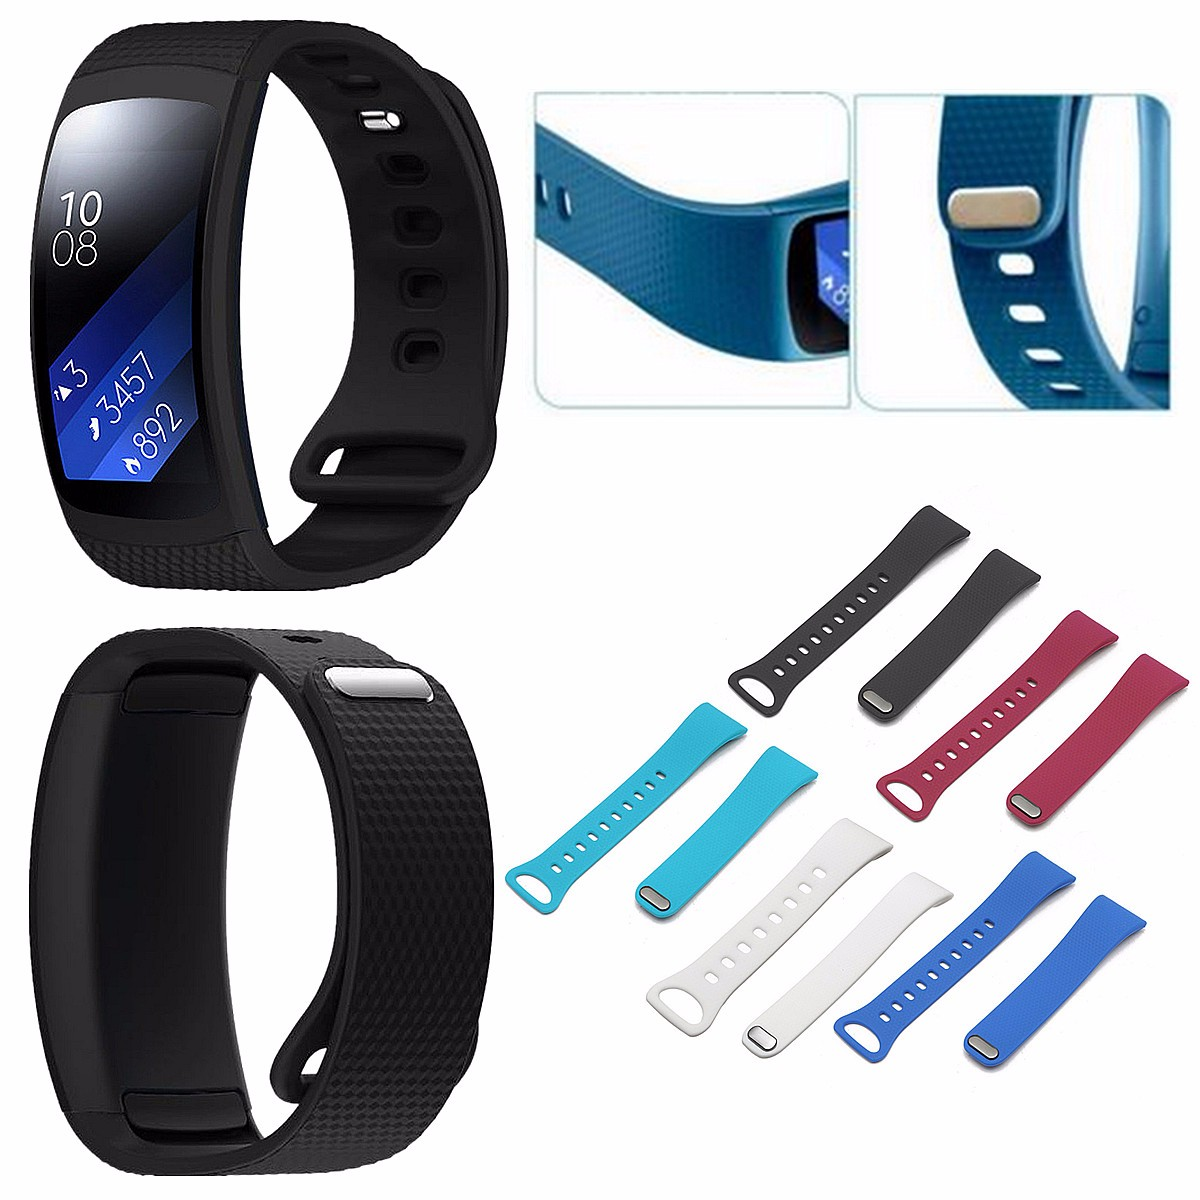 New Arrival Fashion 5 Colors Watchbands Replacement Gifts Silicone WatchBand Strap For Samsung Gear Fit 2 Tracker Wristband luxury silicone watch replacement band strap for samsung gear fit 2 sm r360 wristband 100